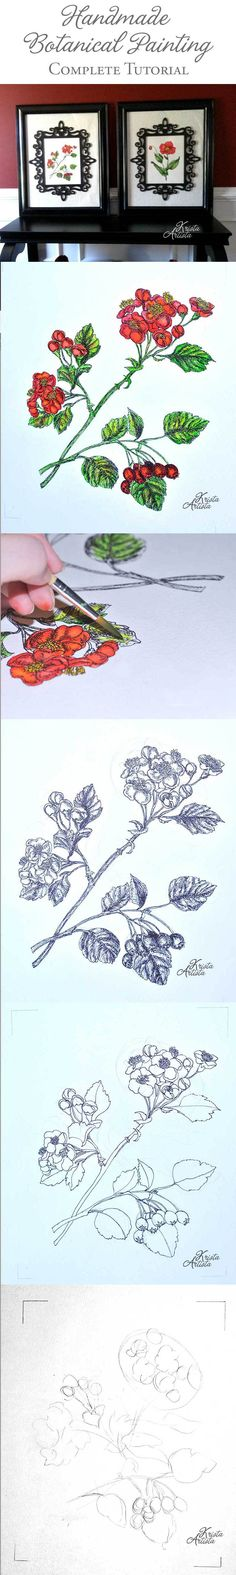 Botanical Paintings Finished  | Found at #pinbellish pin party (weekends sarahcelebrates.com)